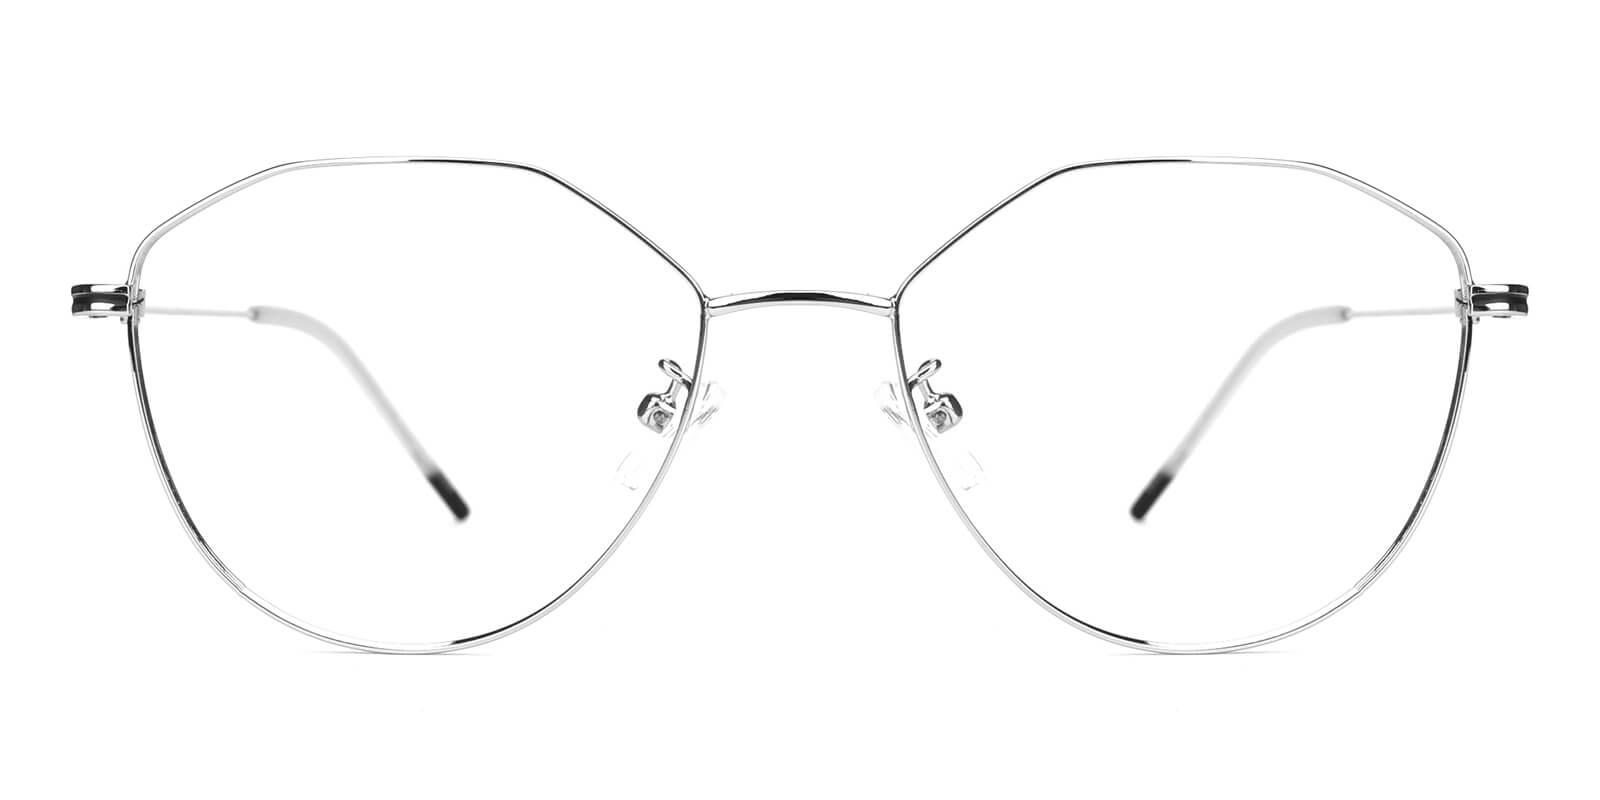 Surberly-Silver-Geometric-Metal-Eyeglasses-additional2